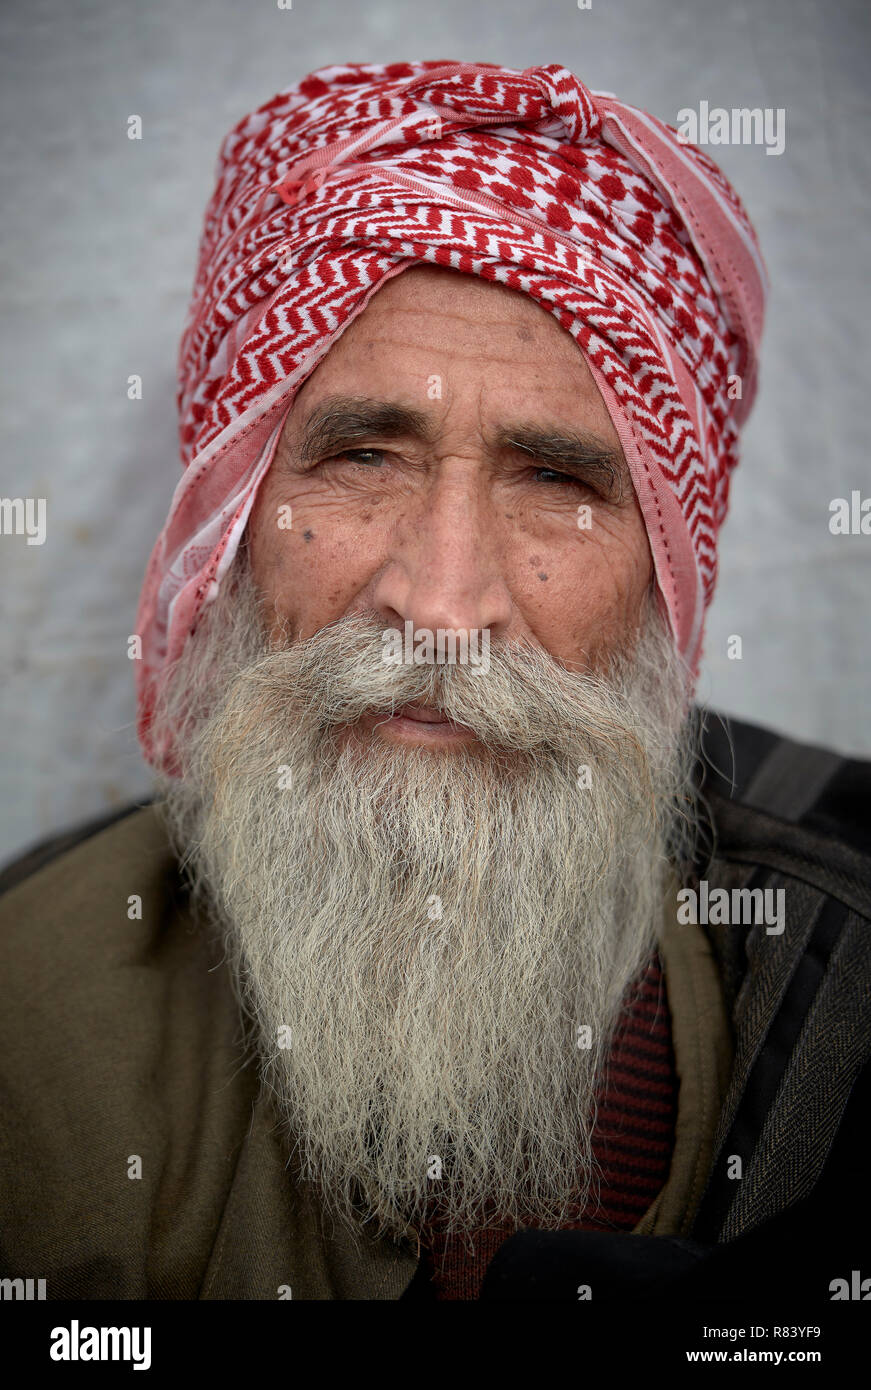 A Yazidi man in a camp for internally displaced persons at Dawodiya in Iraq's Kurdistan region. Over 600 Yazidi families live in the camp. - Stock Image